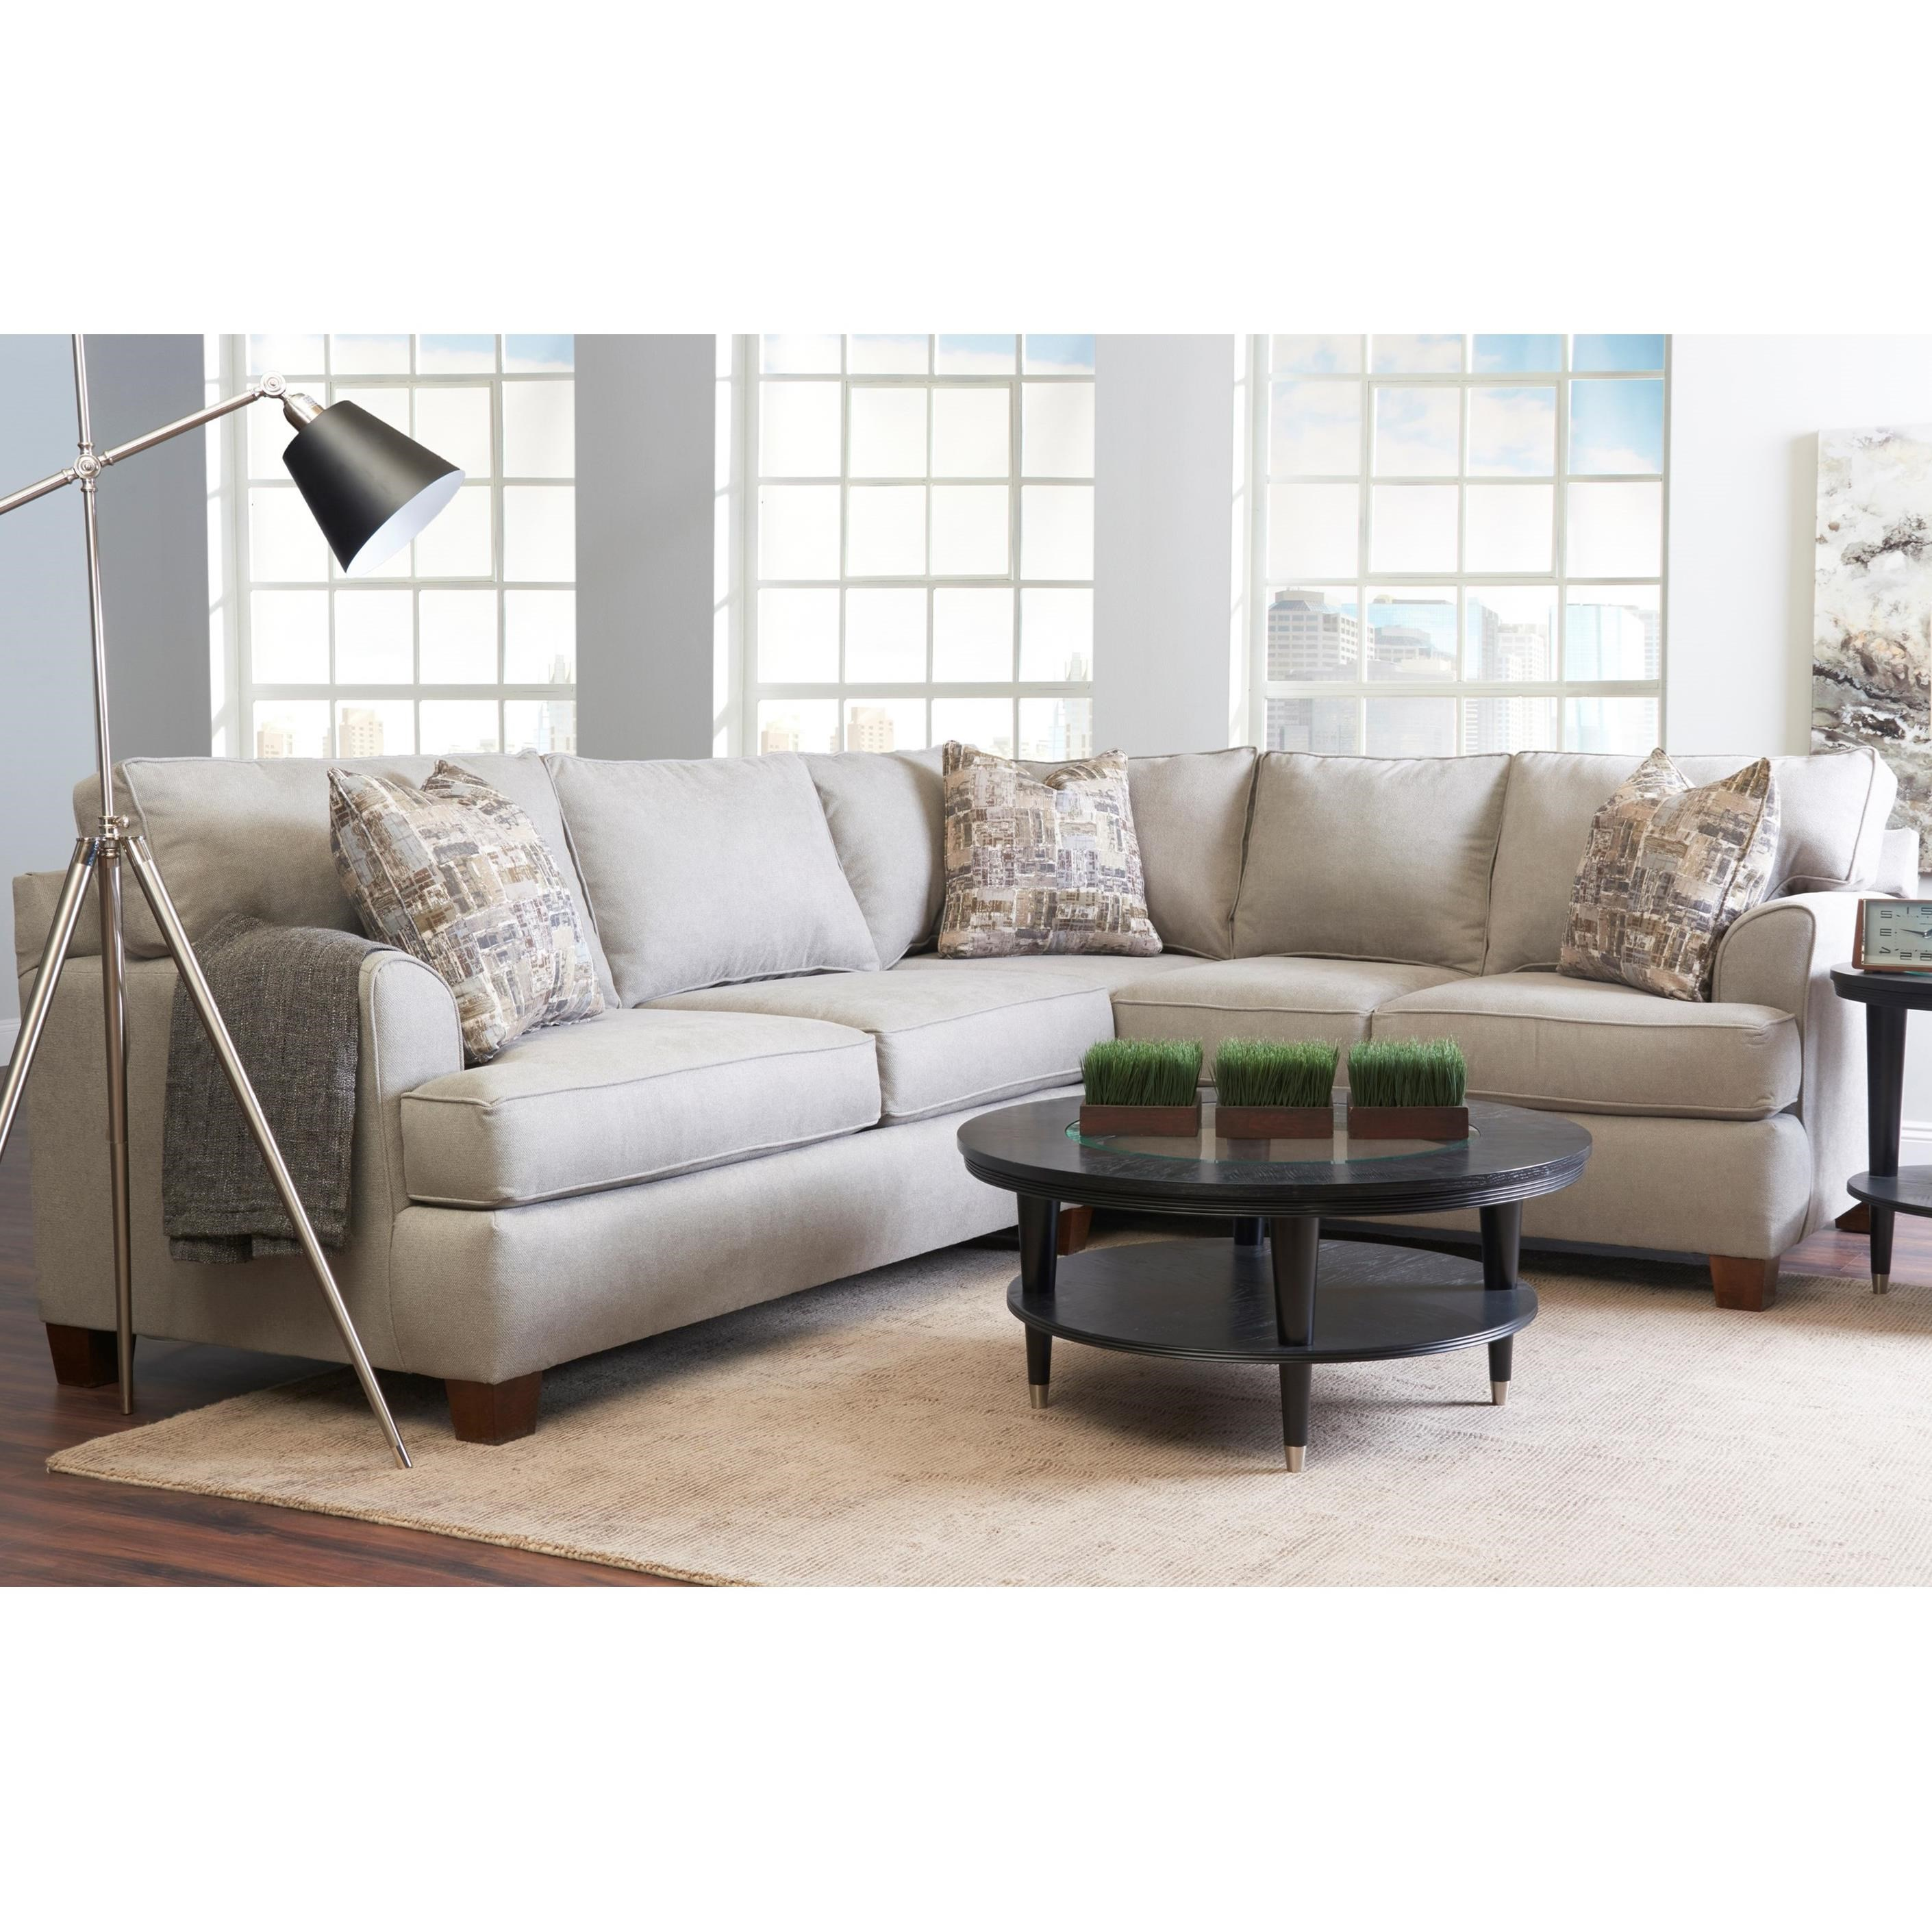 Casual 2-Piece Sectional with Left-Facing Love Seat